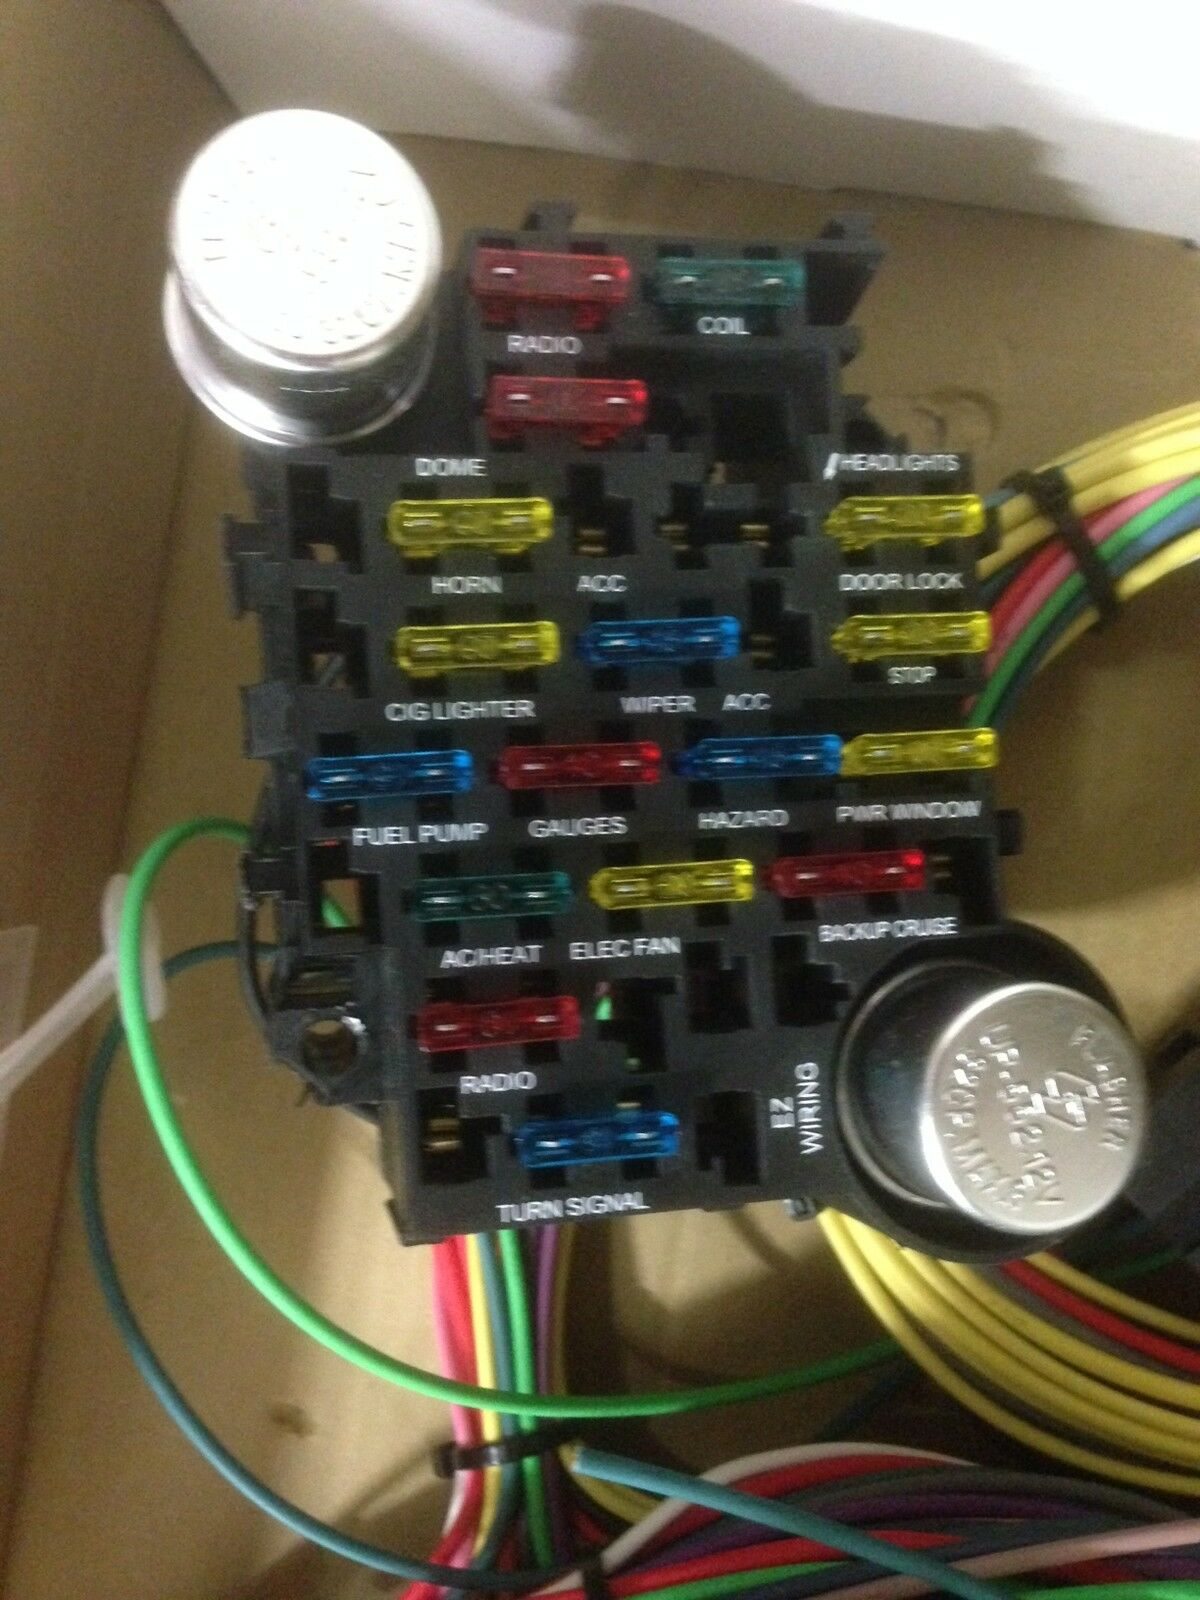 21 Circuit 17 Fuses Ez Wiring Harness Chevy Mopar Ford Hot Rod Universial Wires 1 Of 6